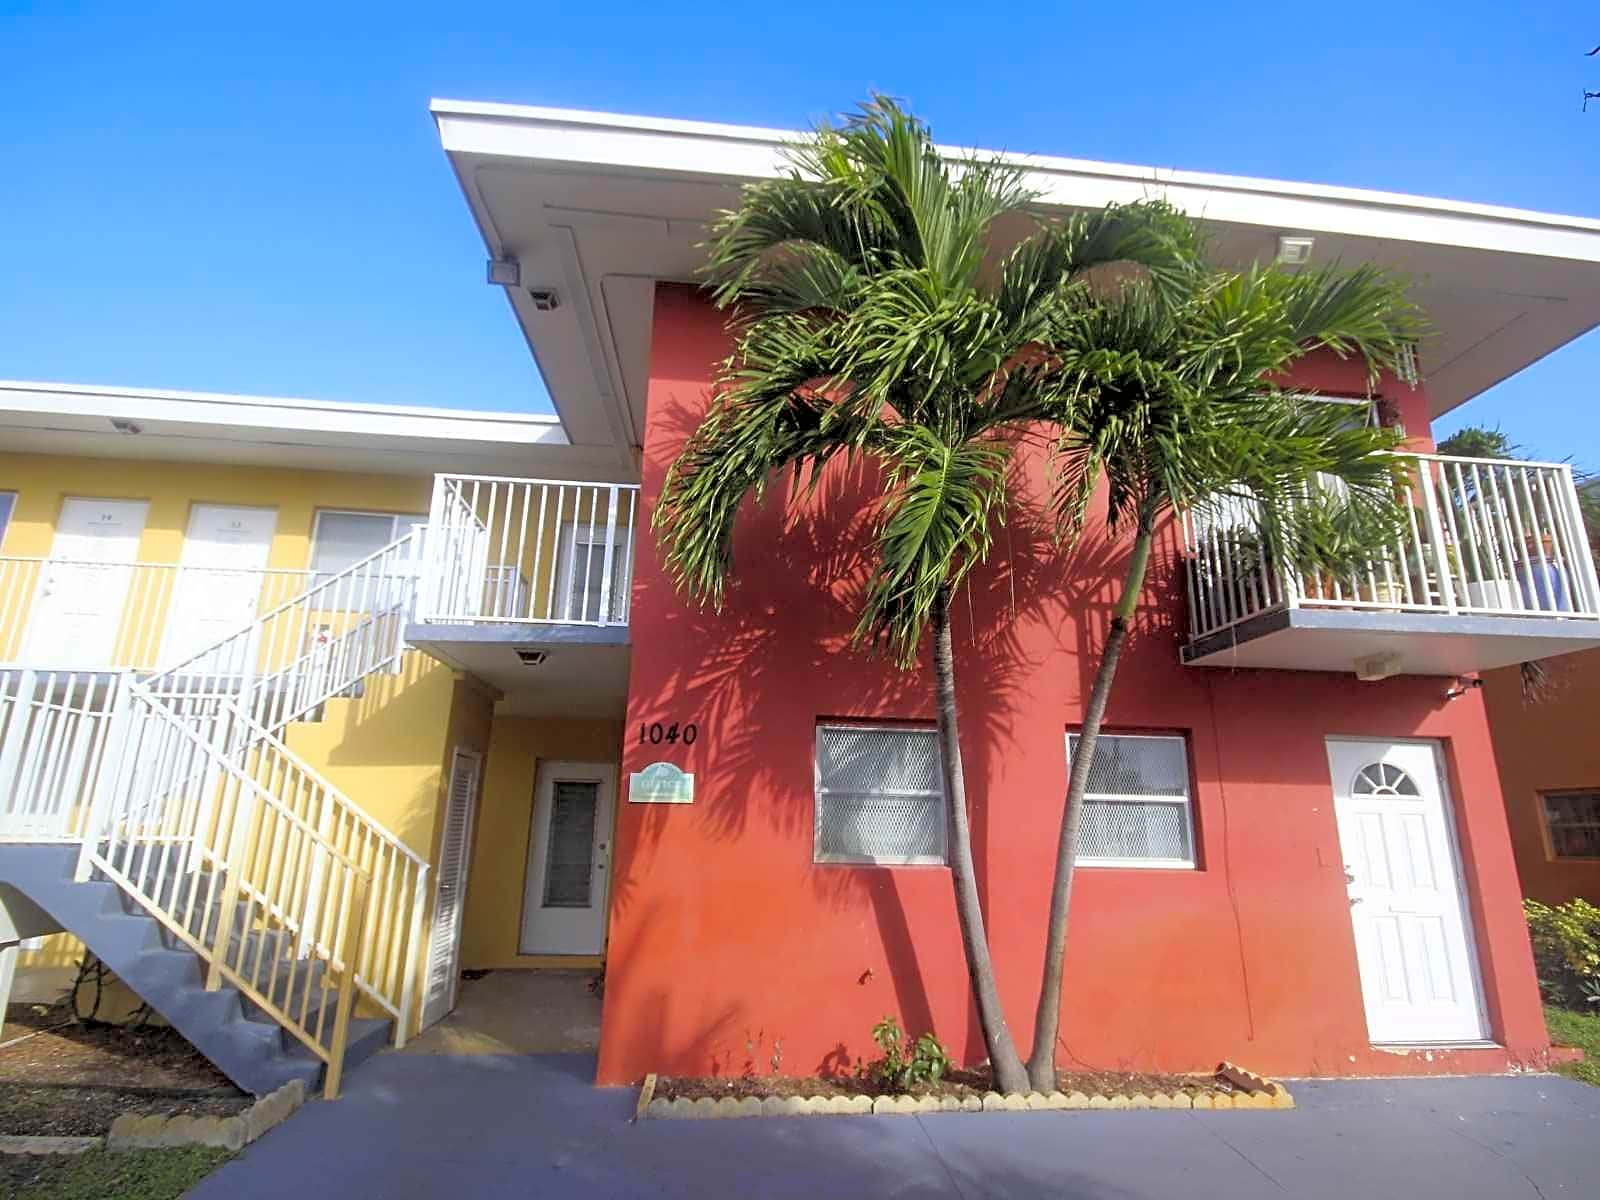 Photo: Fort Lauderdale Apartment for Rent - $1030.00 / month; 2 Bd & 2 Ba